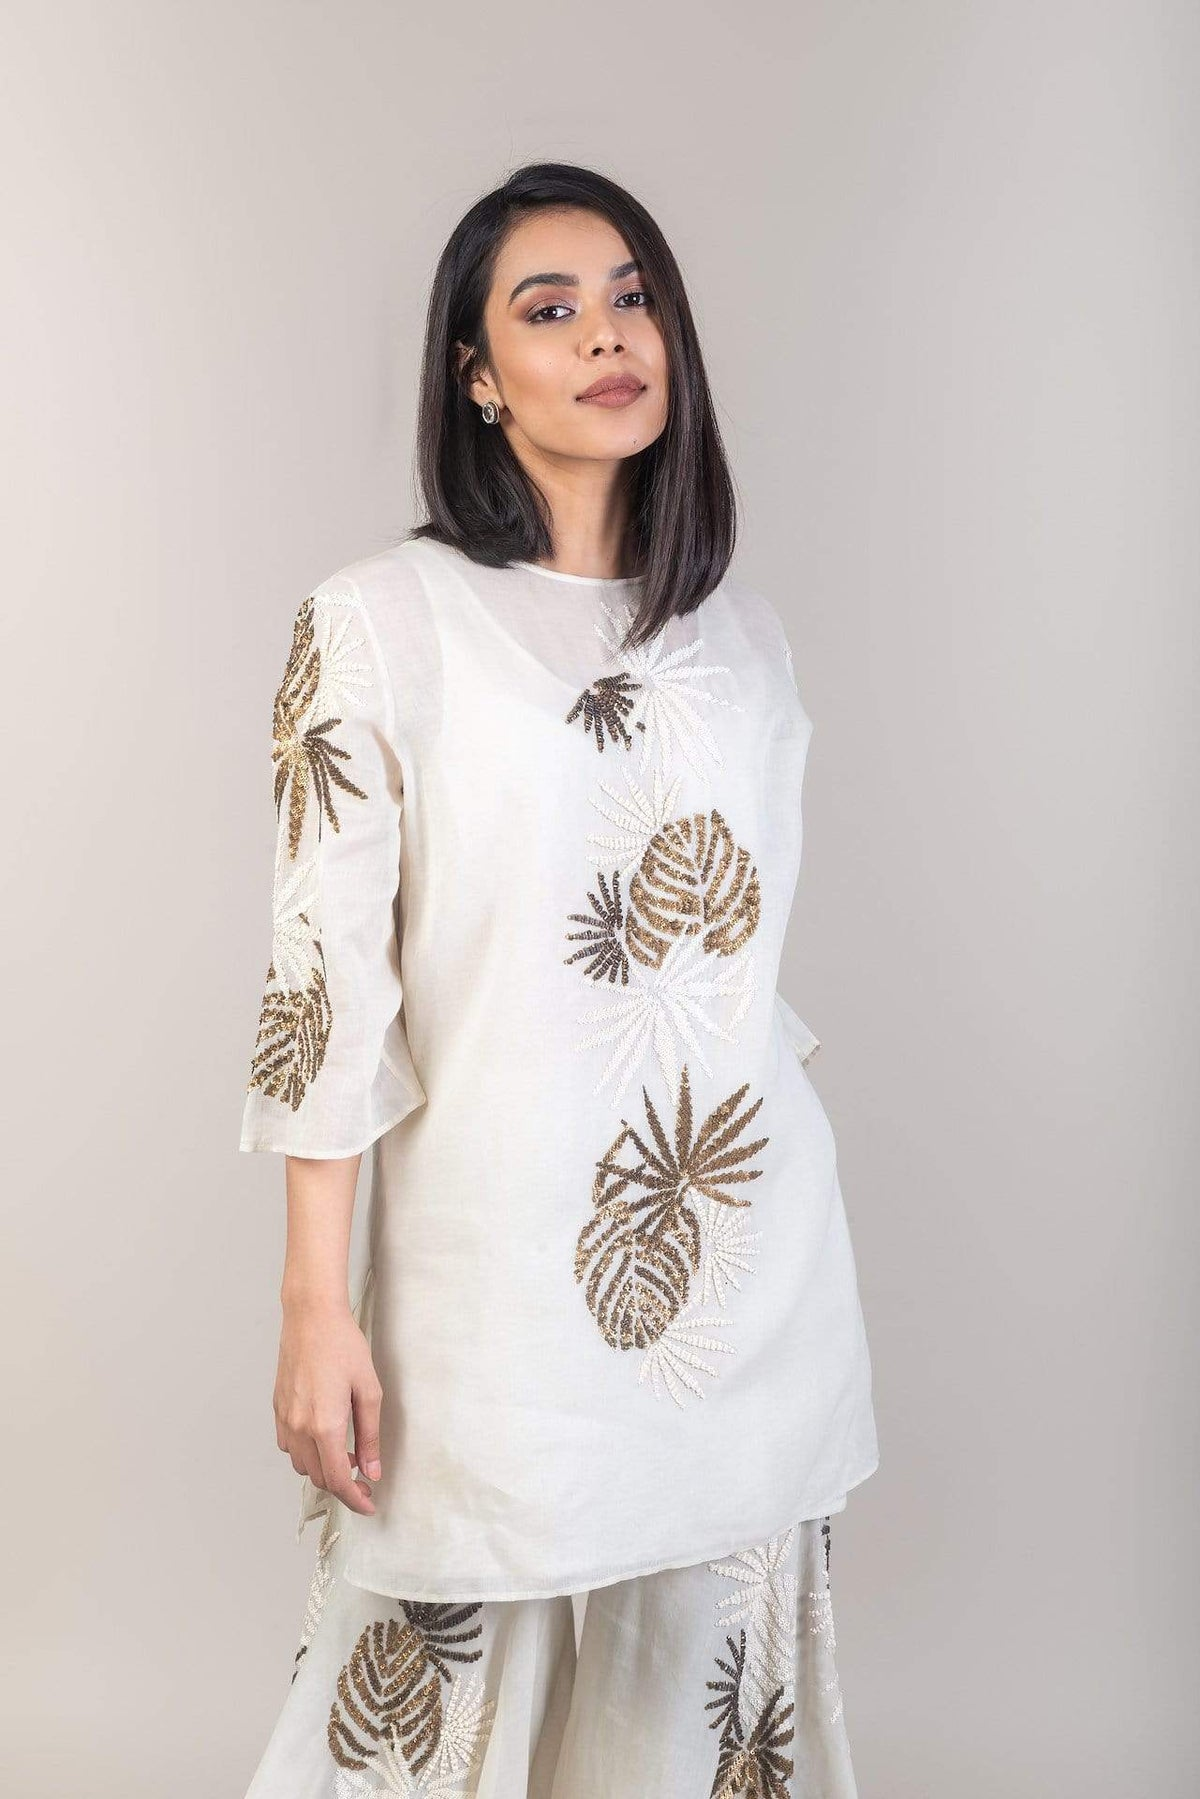 Peachoo Shirts & Tops Cotton foliage embroidered top